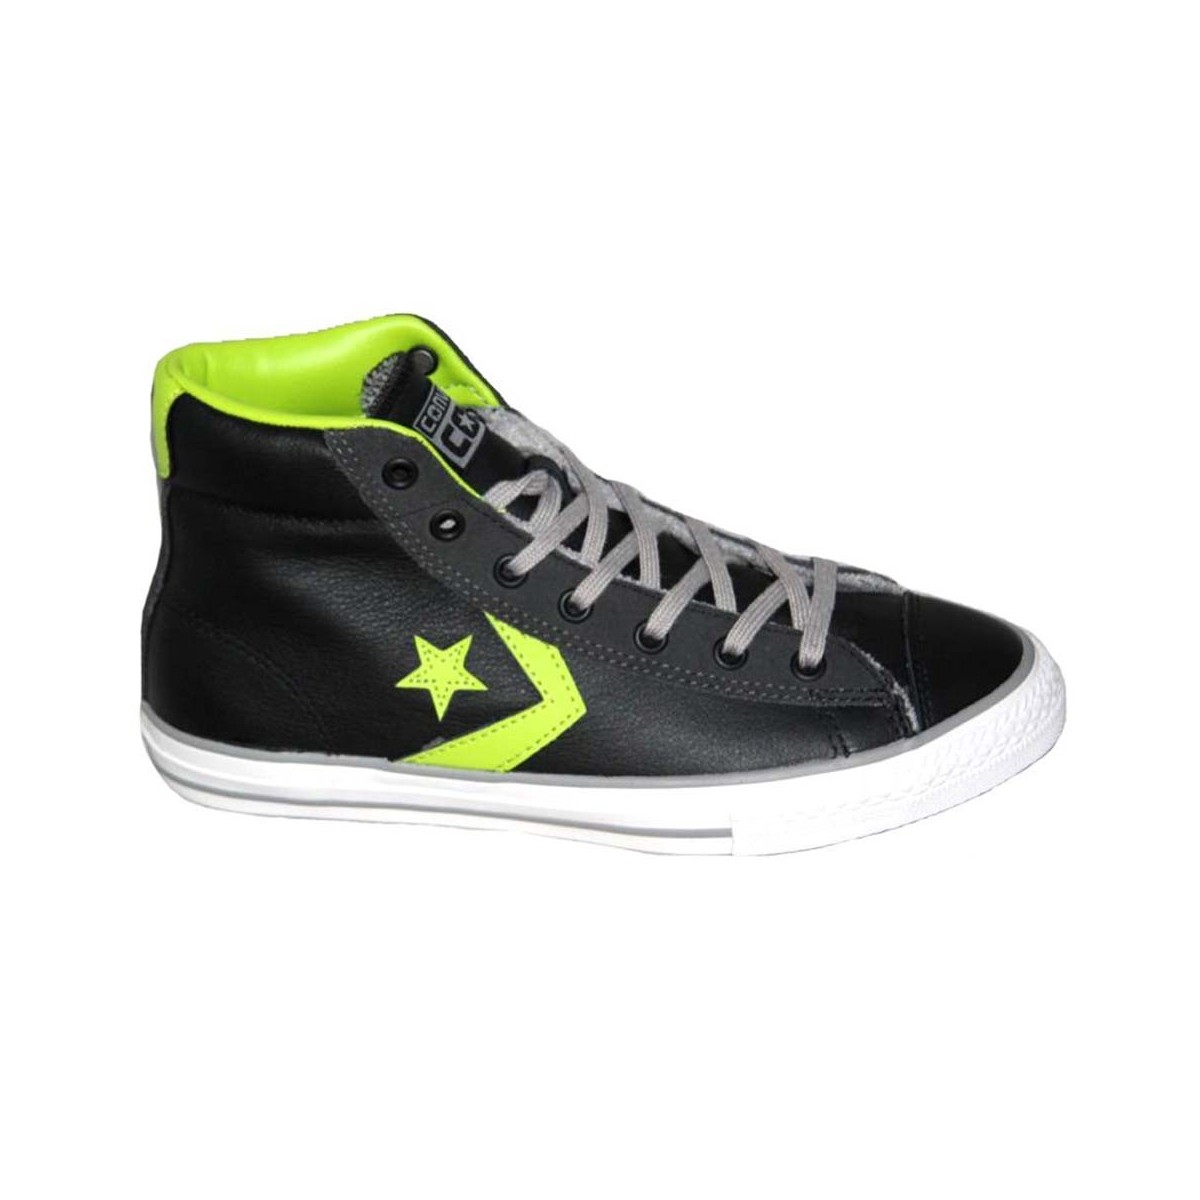 SCARPE CONVERSE STAR PLAYER EV MID LEATHER/SUE NERE-VERDE LIME A/I 2016 655168C